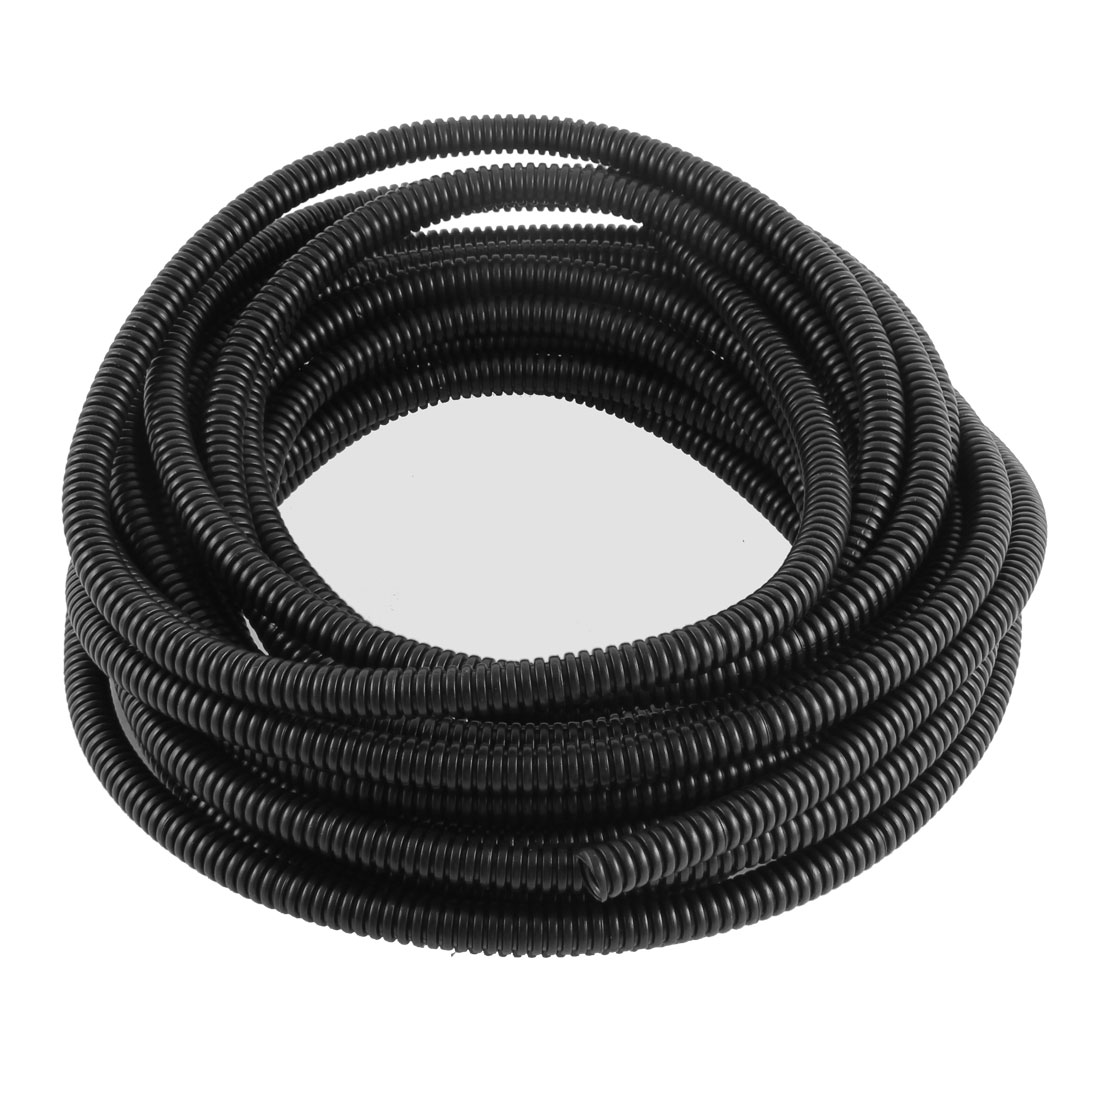 10mm x 8mm Dia Flexible Bellows Hose Corrugated Conduit Cable Tube Pipe 9M Black(China (Mainland))